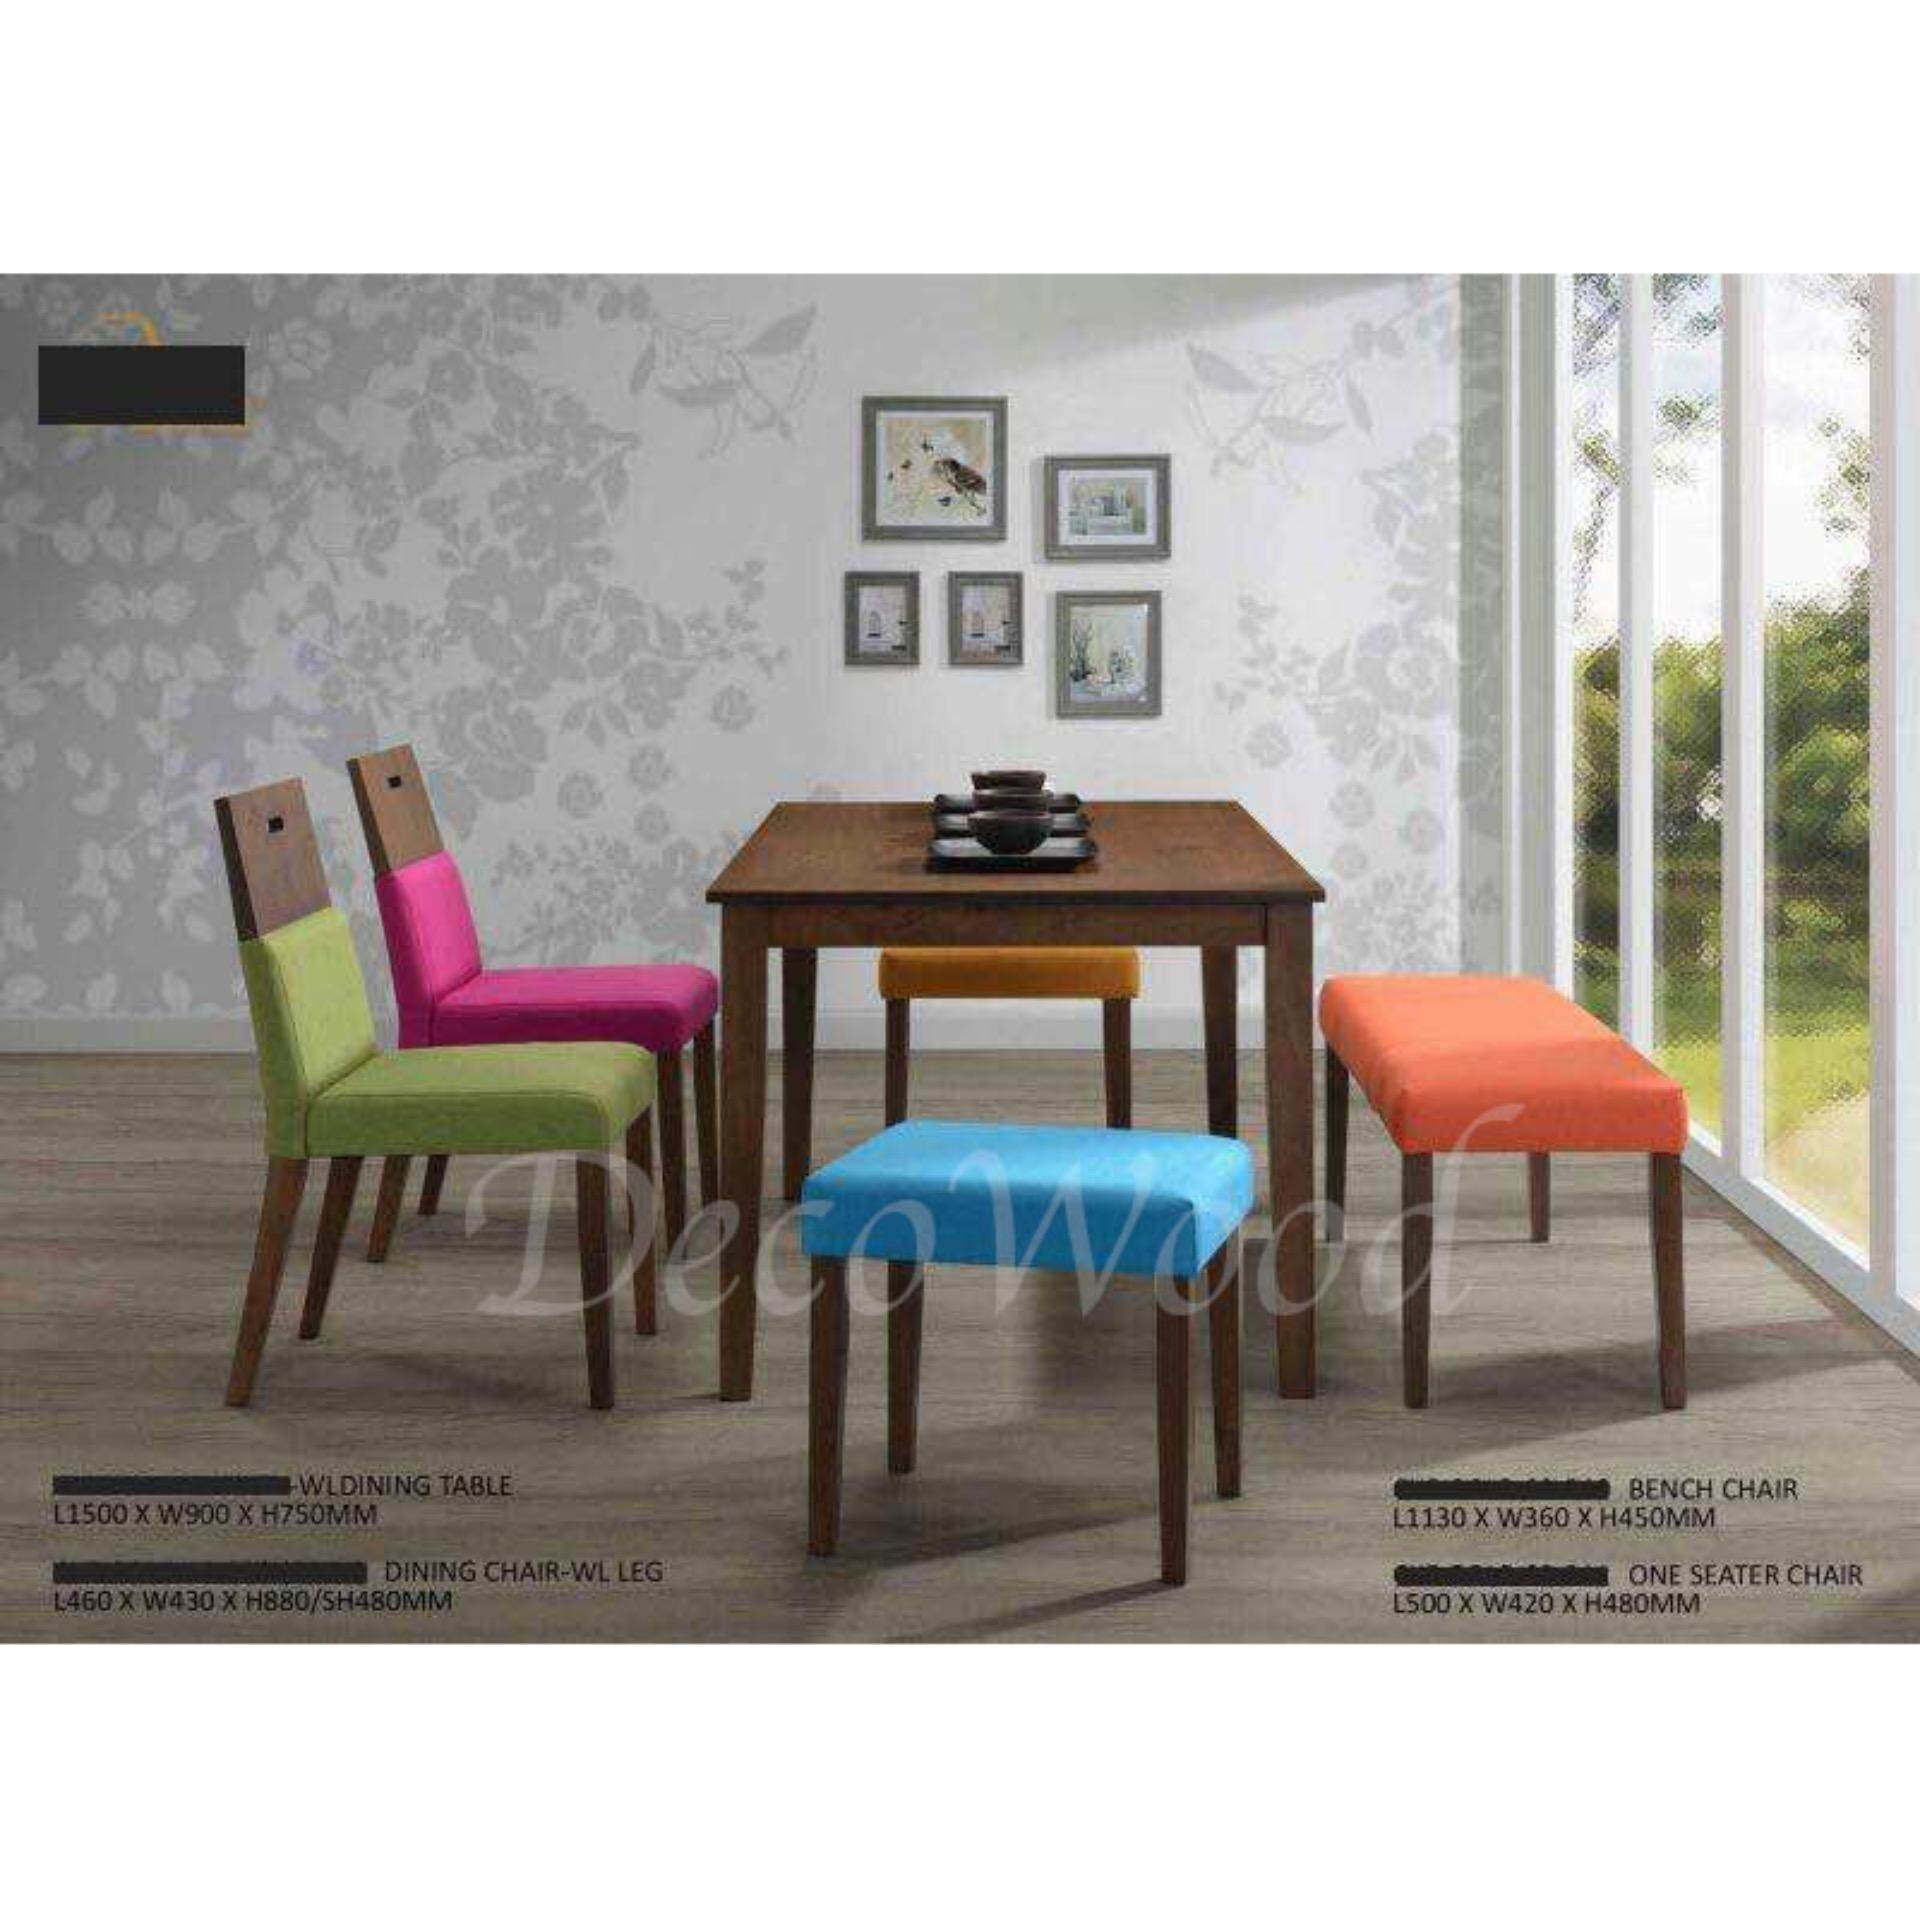 Solid Wood 1 Dining Table + 3 Cushion Stool Dining Set Breakfast Lunch Dinner Set(Mixed Color) L1500MM X W900MM X H750MM Pre Order 2 Week